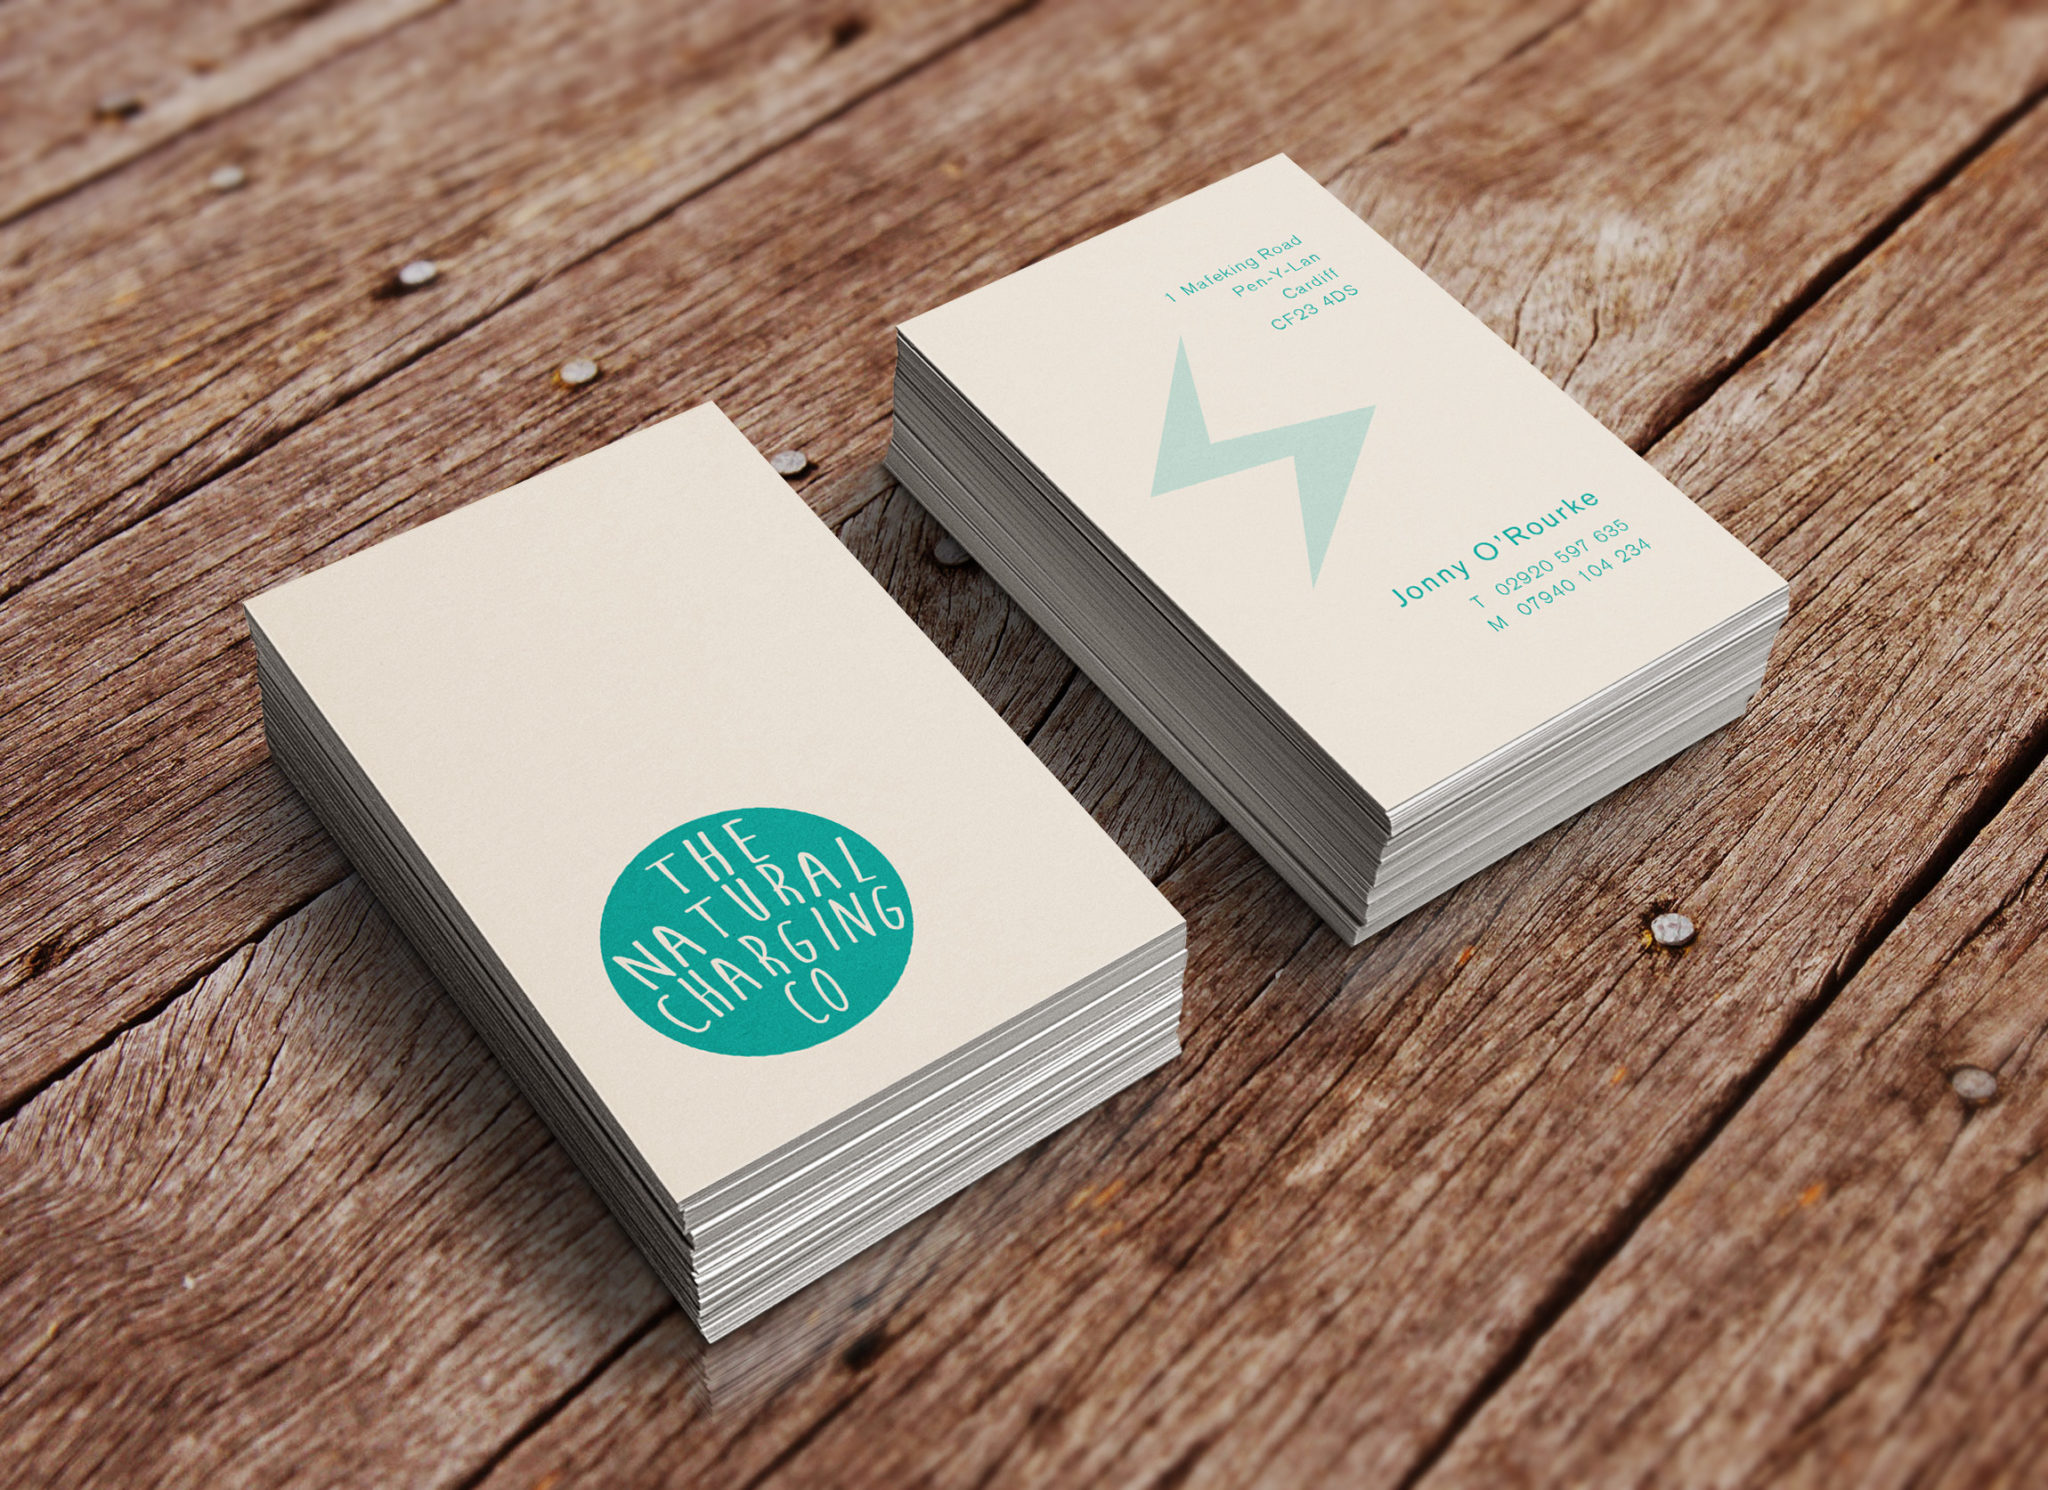 Cardiff Graphic Designer Business Card   The Cardiff Graphic ...